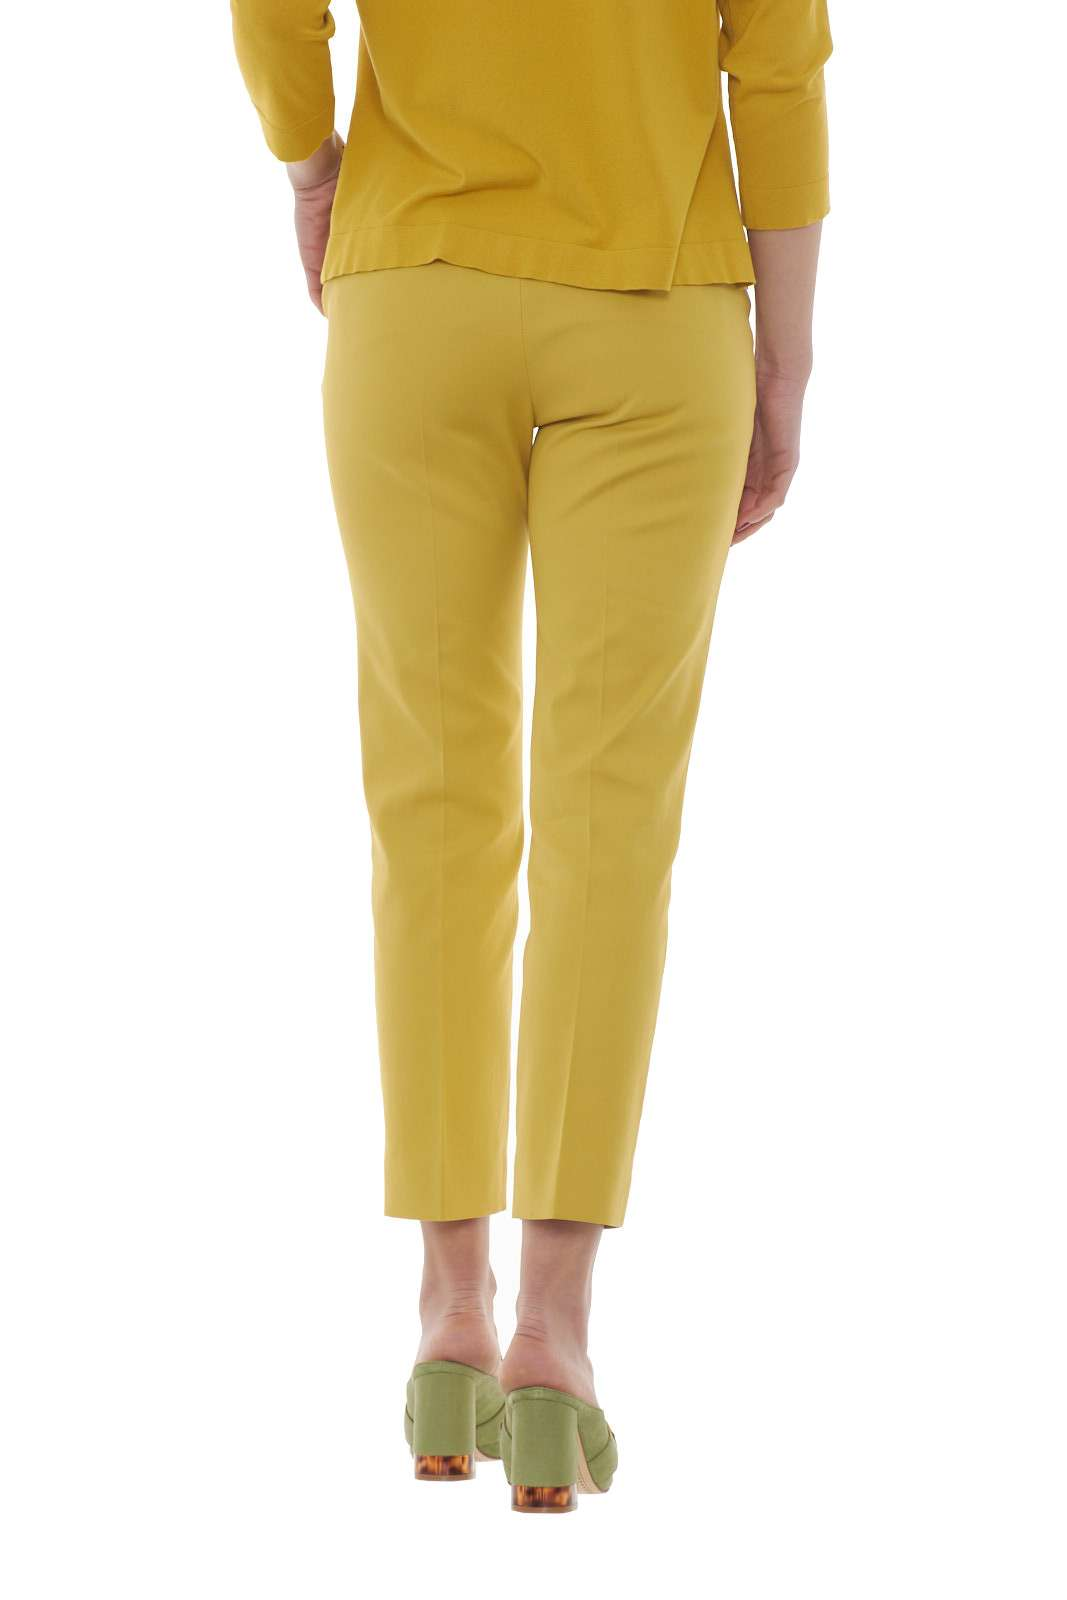 https://www.parmax.com/media/catalog/product/a/i/PE-outlet_parmax-pantaloni-donna-MaxMara-51310107-C.jpg